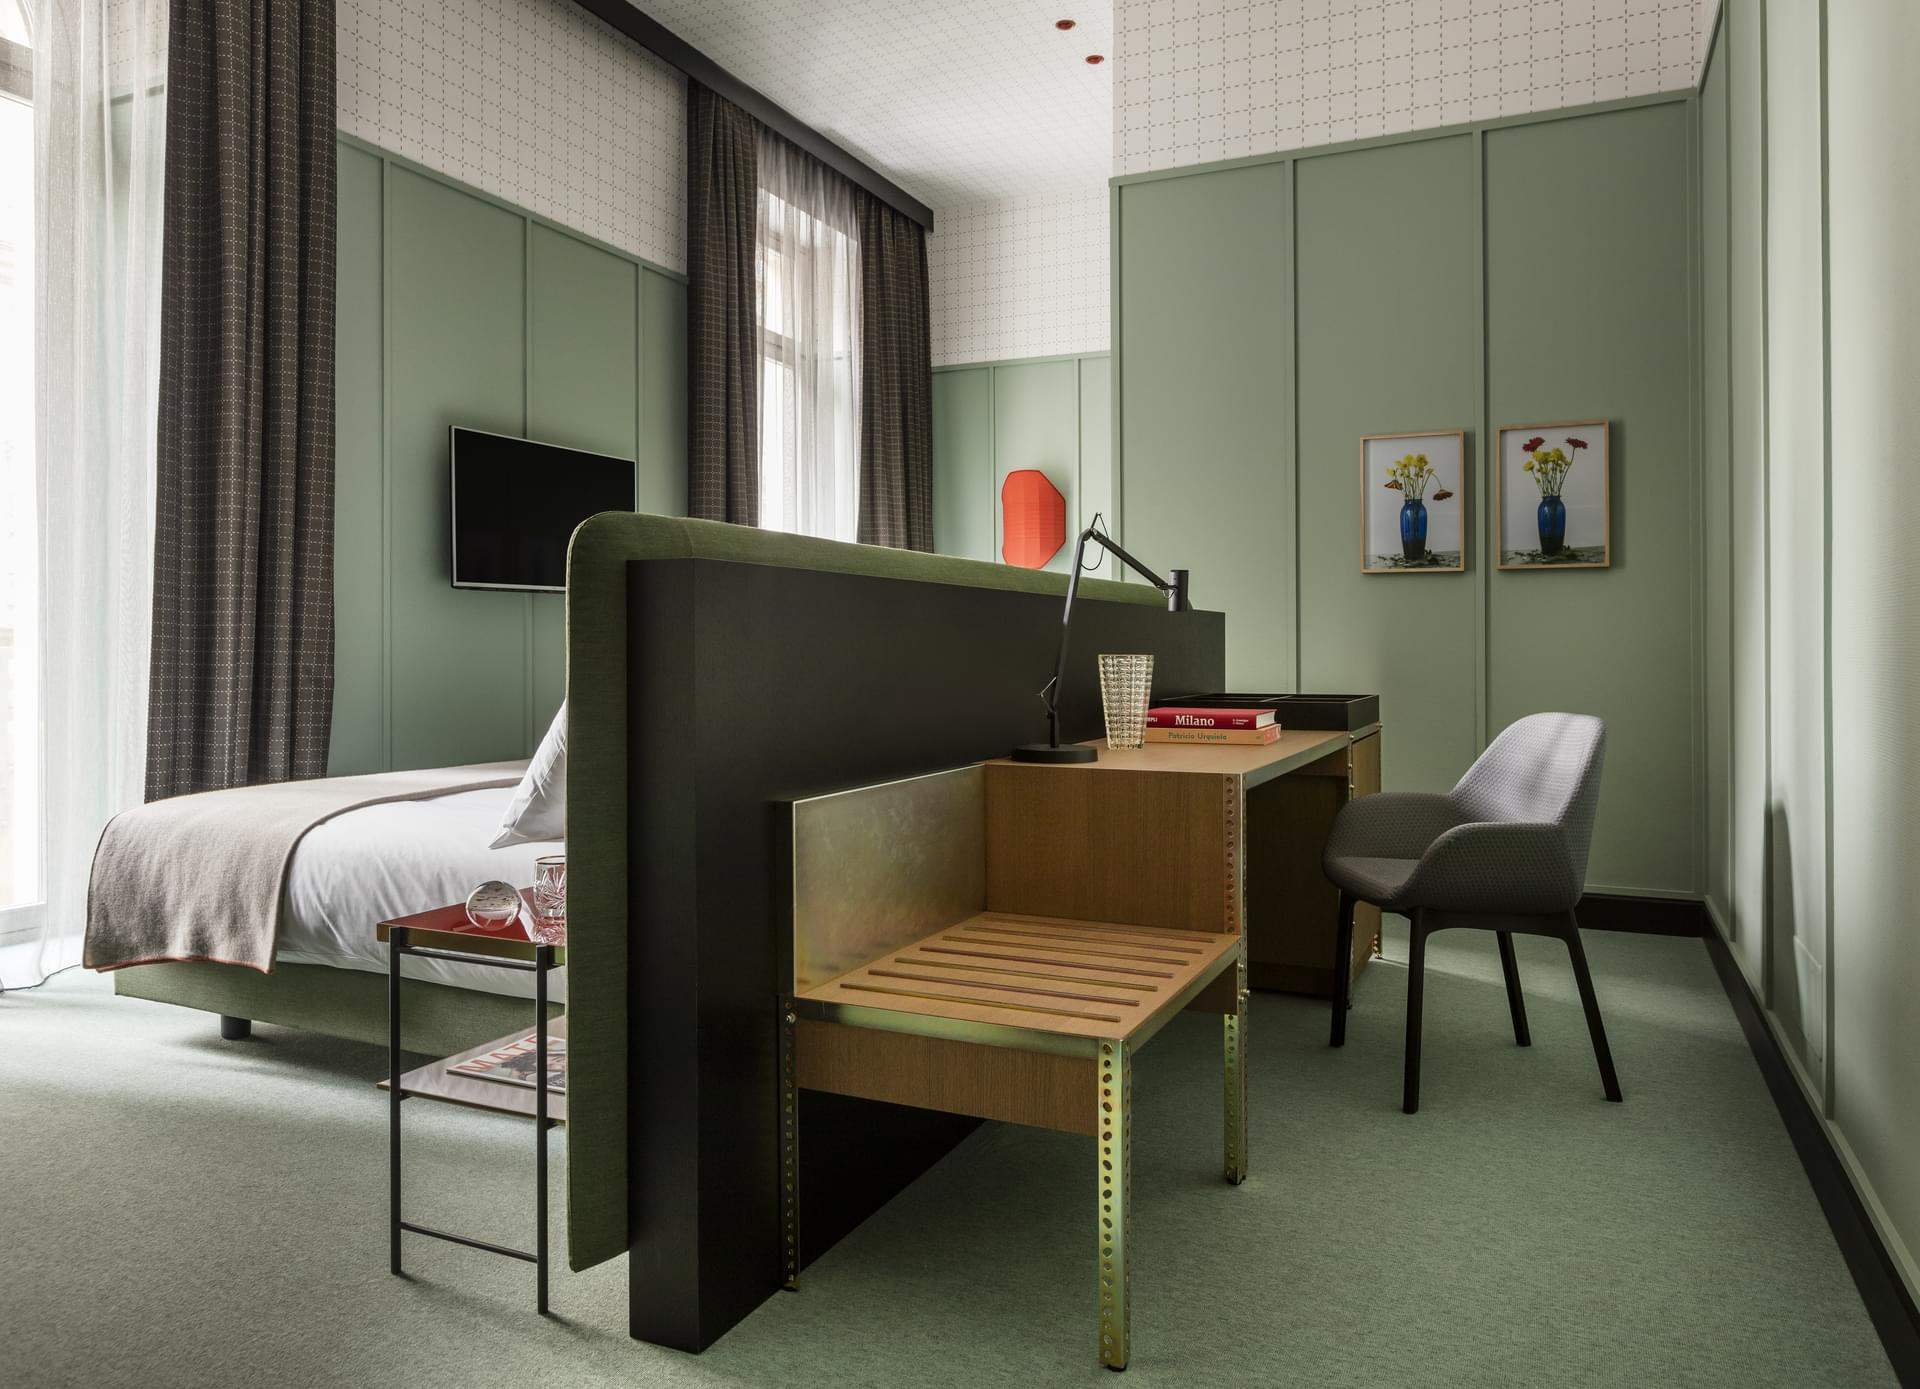 Hotel Design Milan Room Mate Giulia An Artistic Design Hotel In The Heart Of Milan